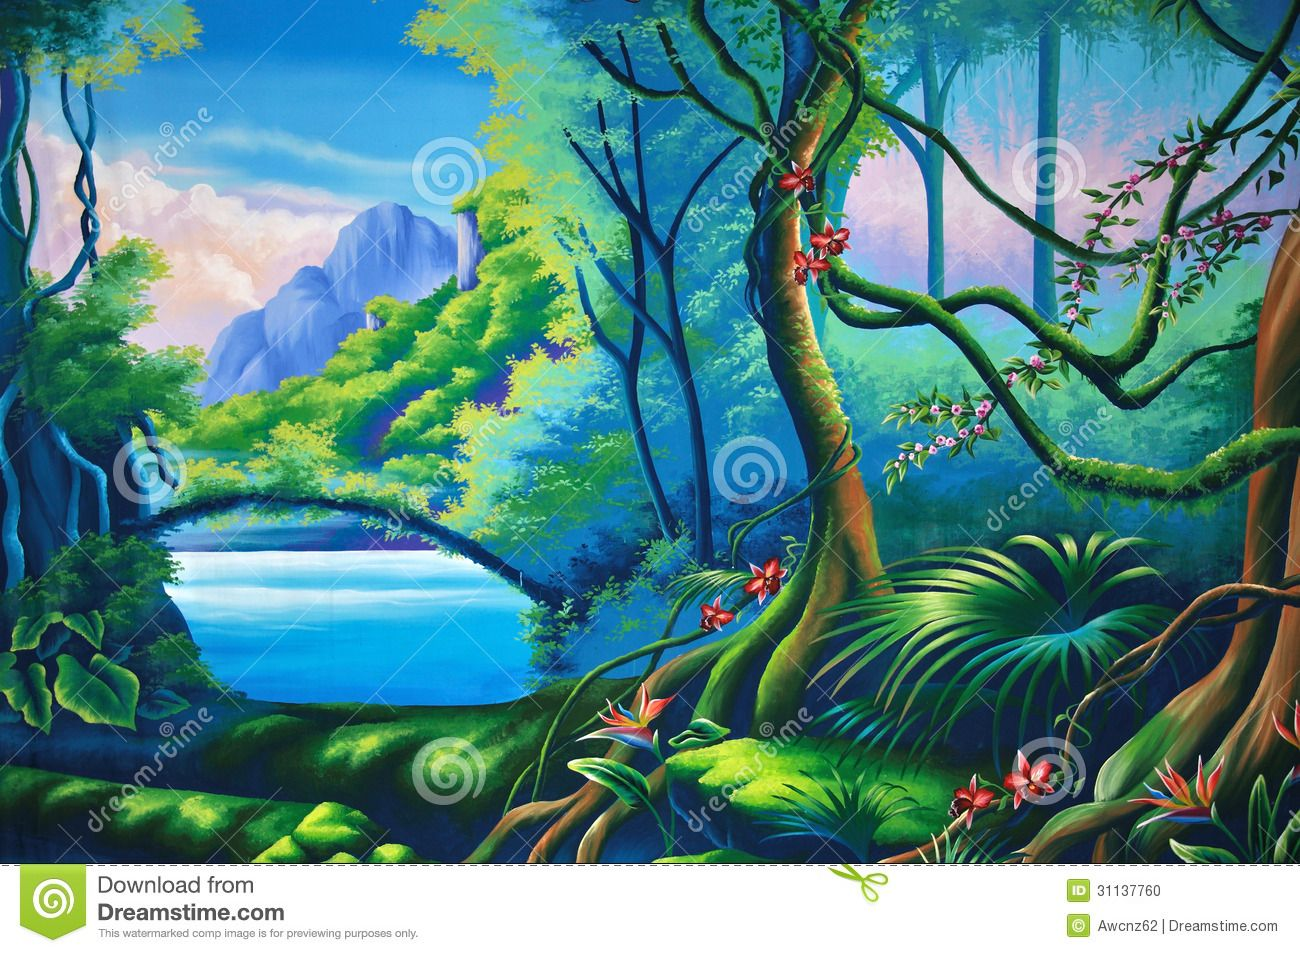 Jungle clipart. Images for background off